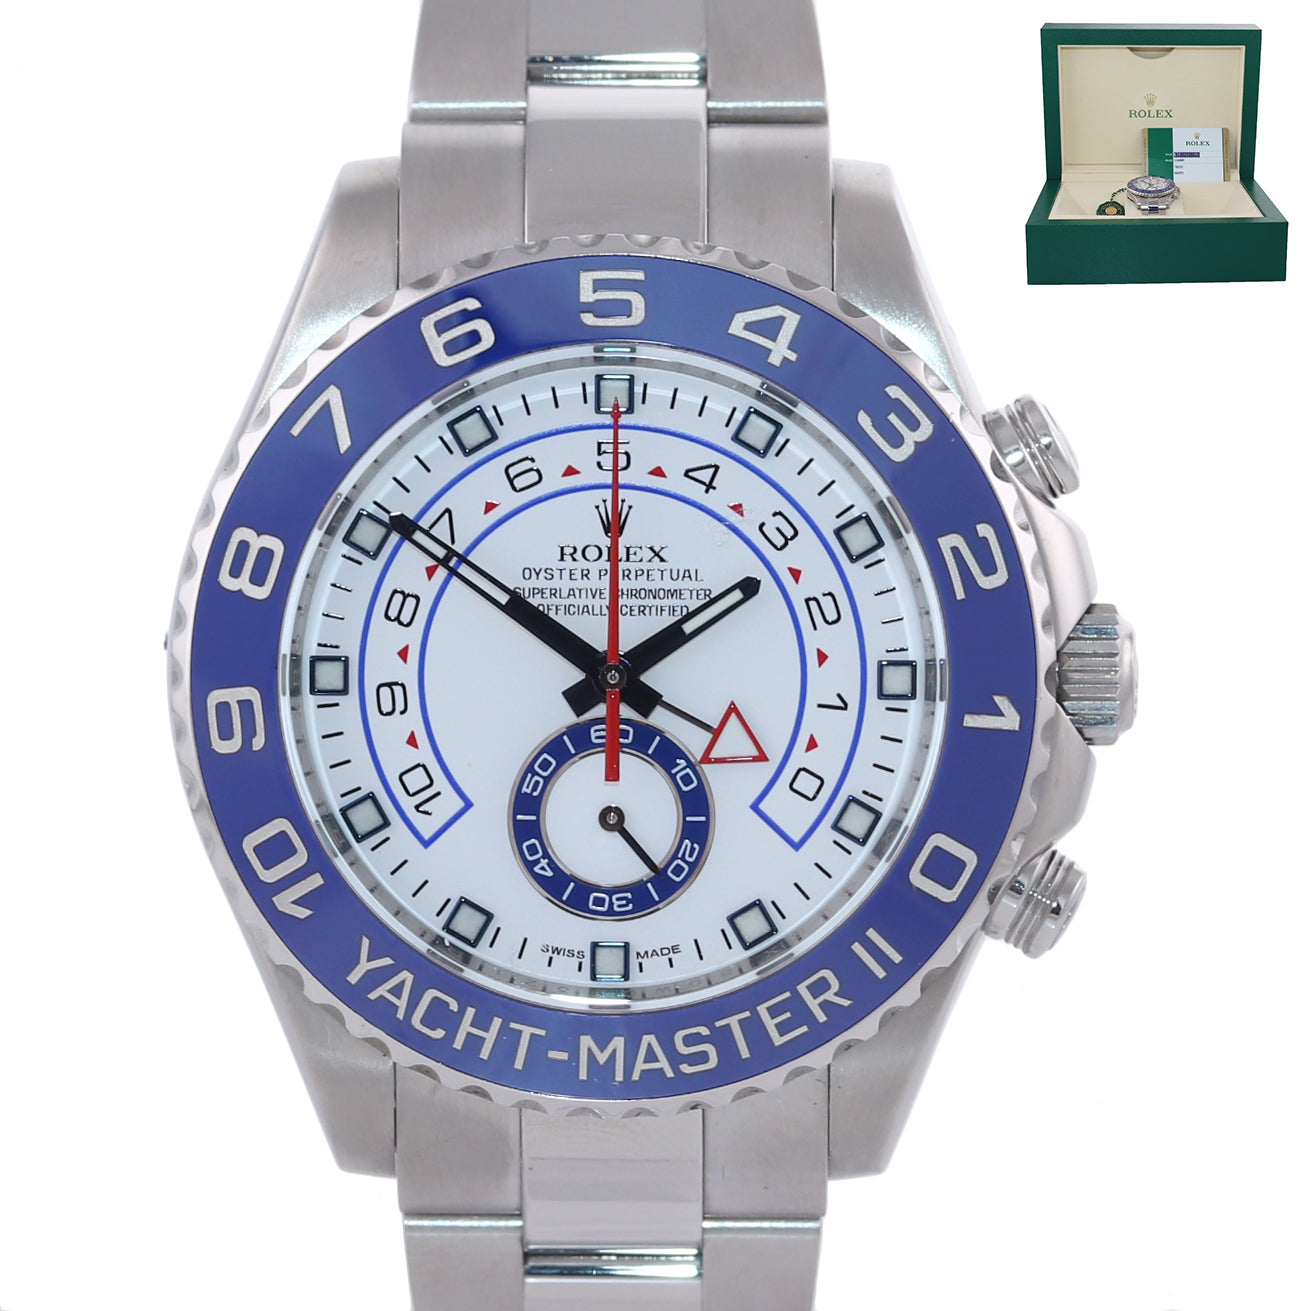 PAPERS MINT 2016 Rolex Yacht-Master II 44mm Steel Random Ceramic 116680 Watch